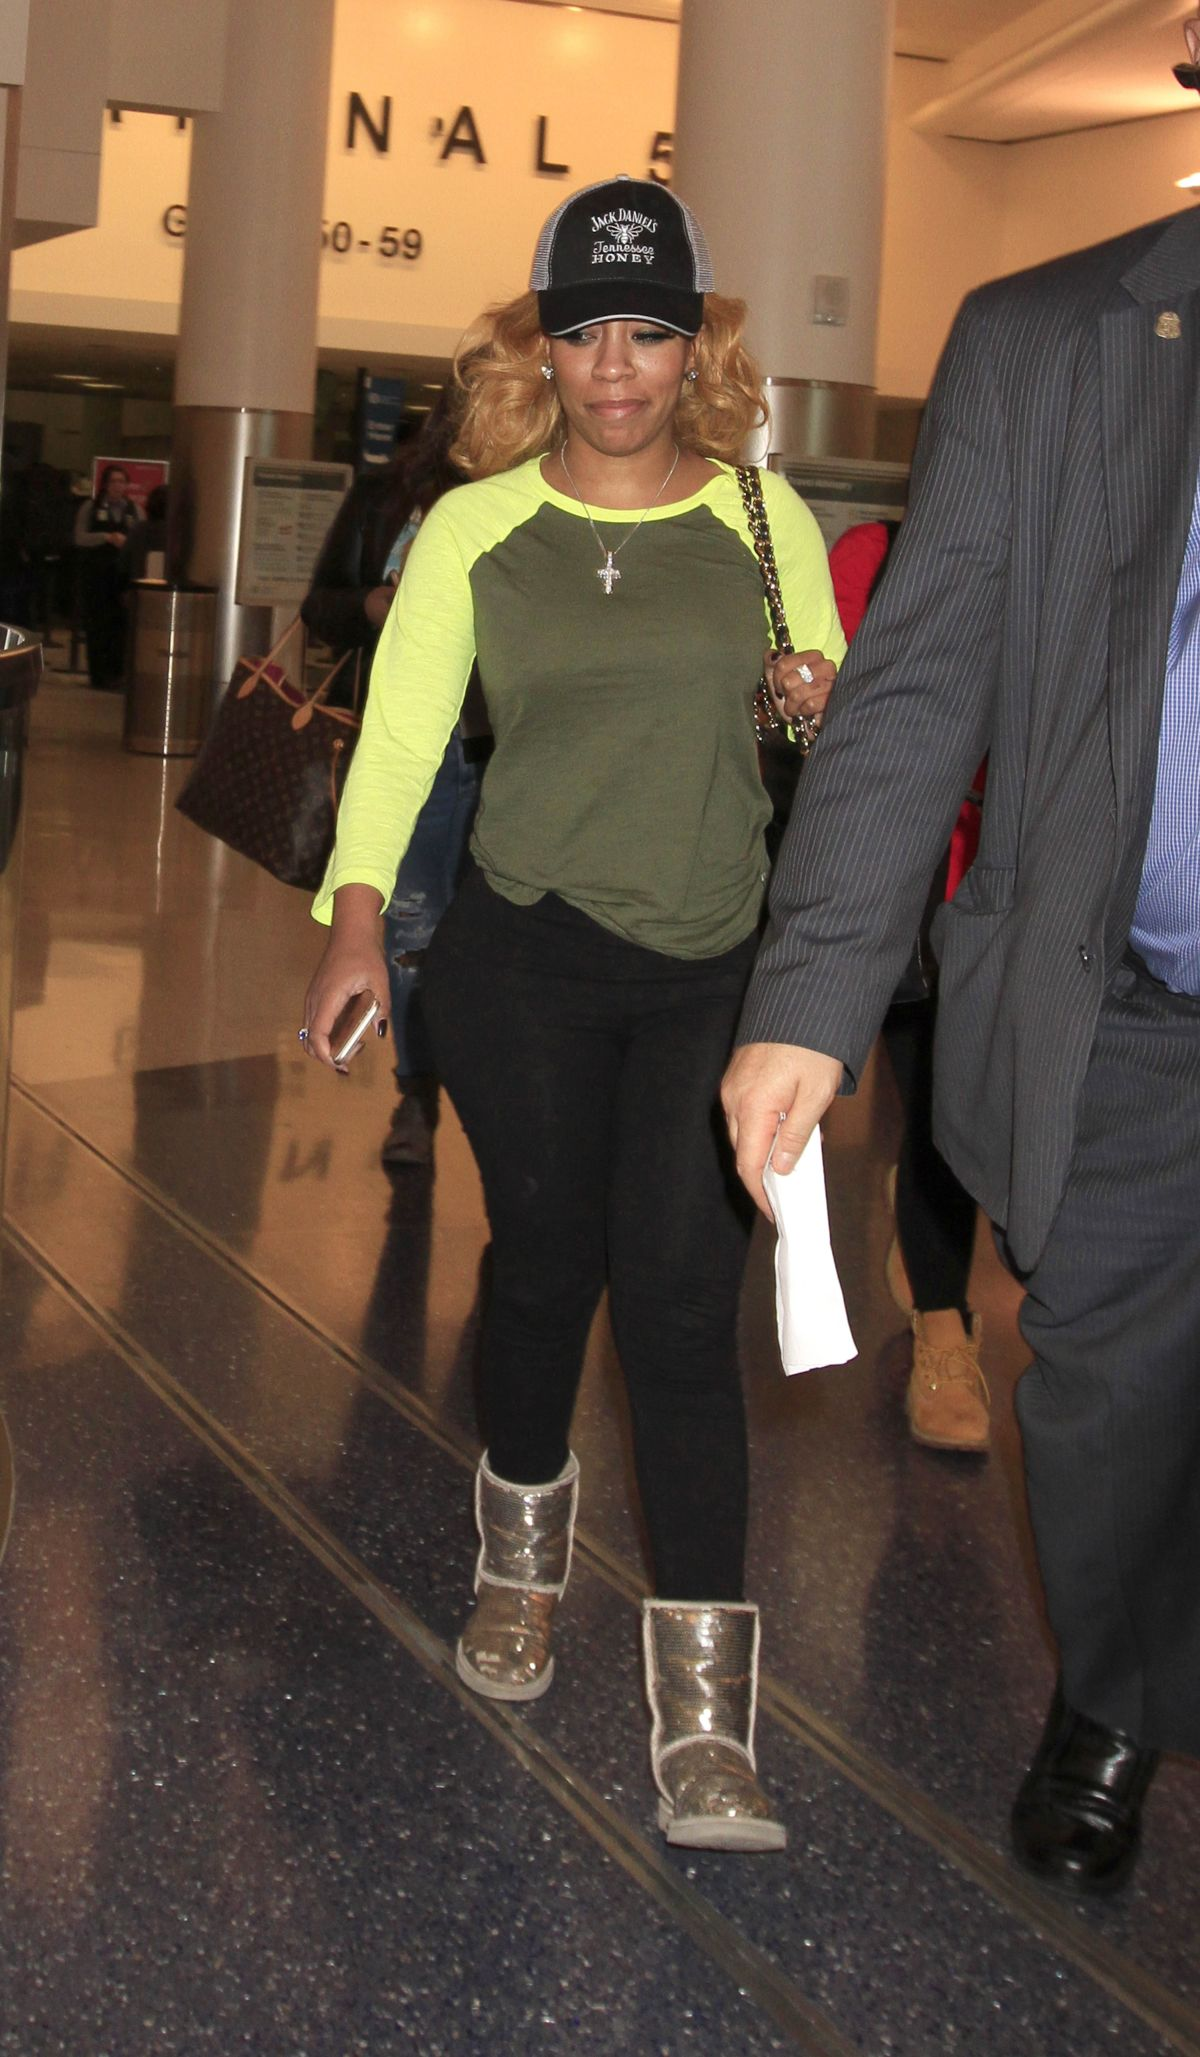 KIM BURRELL at LAX Airport in Los Angeles 02/08/2016